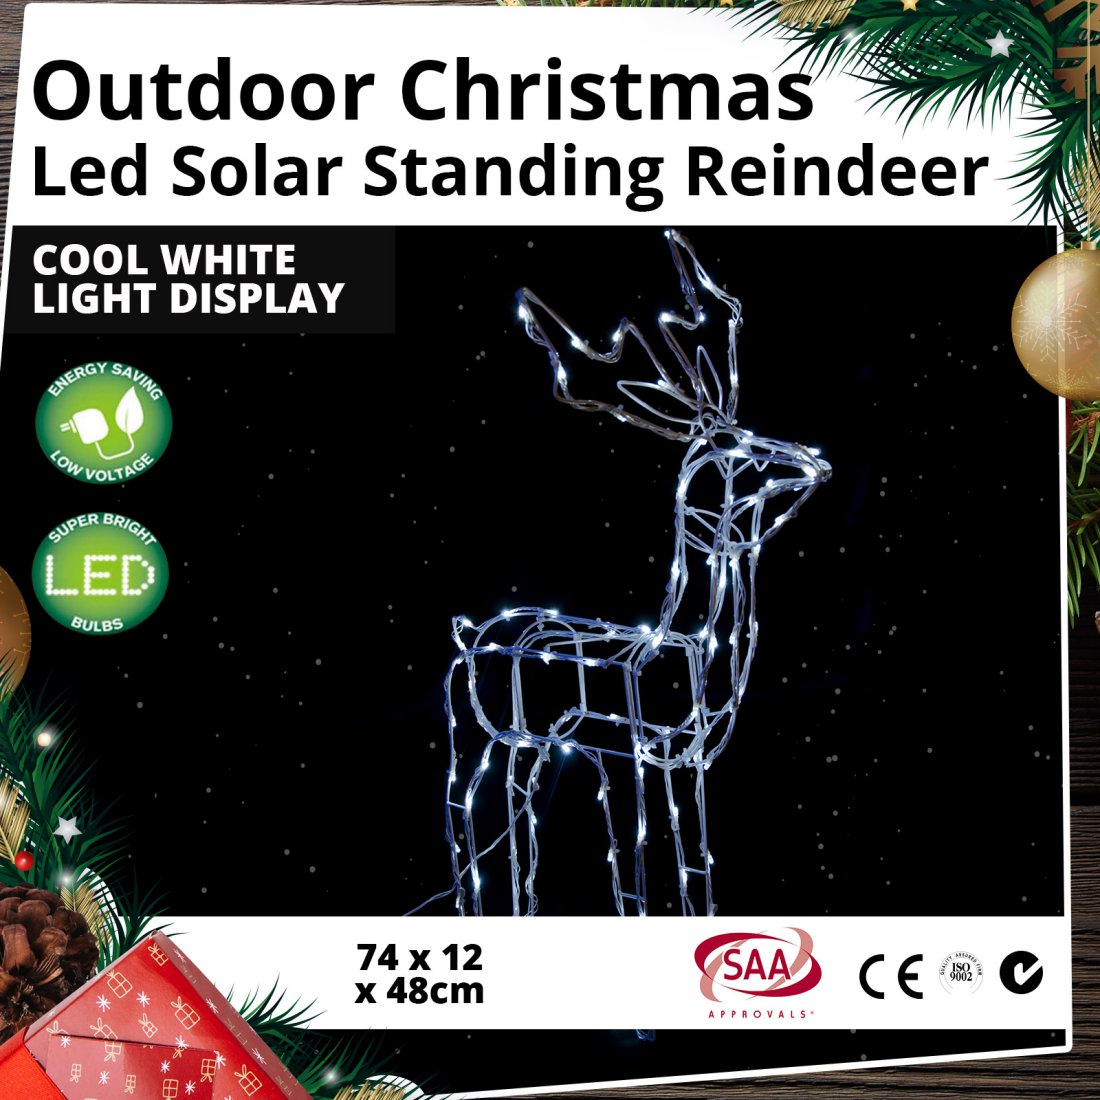 Outdoor LED Solar Standing Reindeer Cool White Christmas Light Display